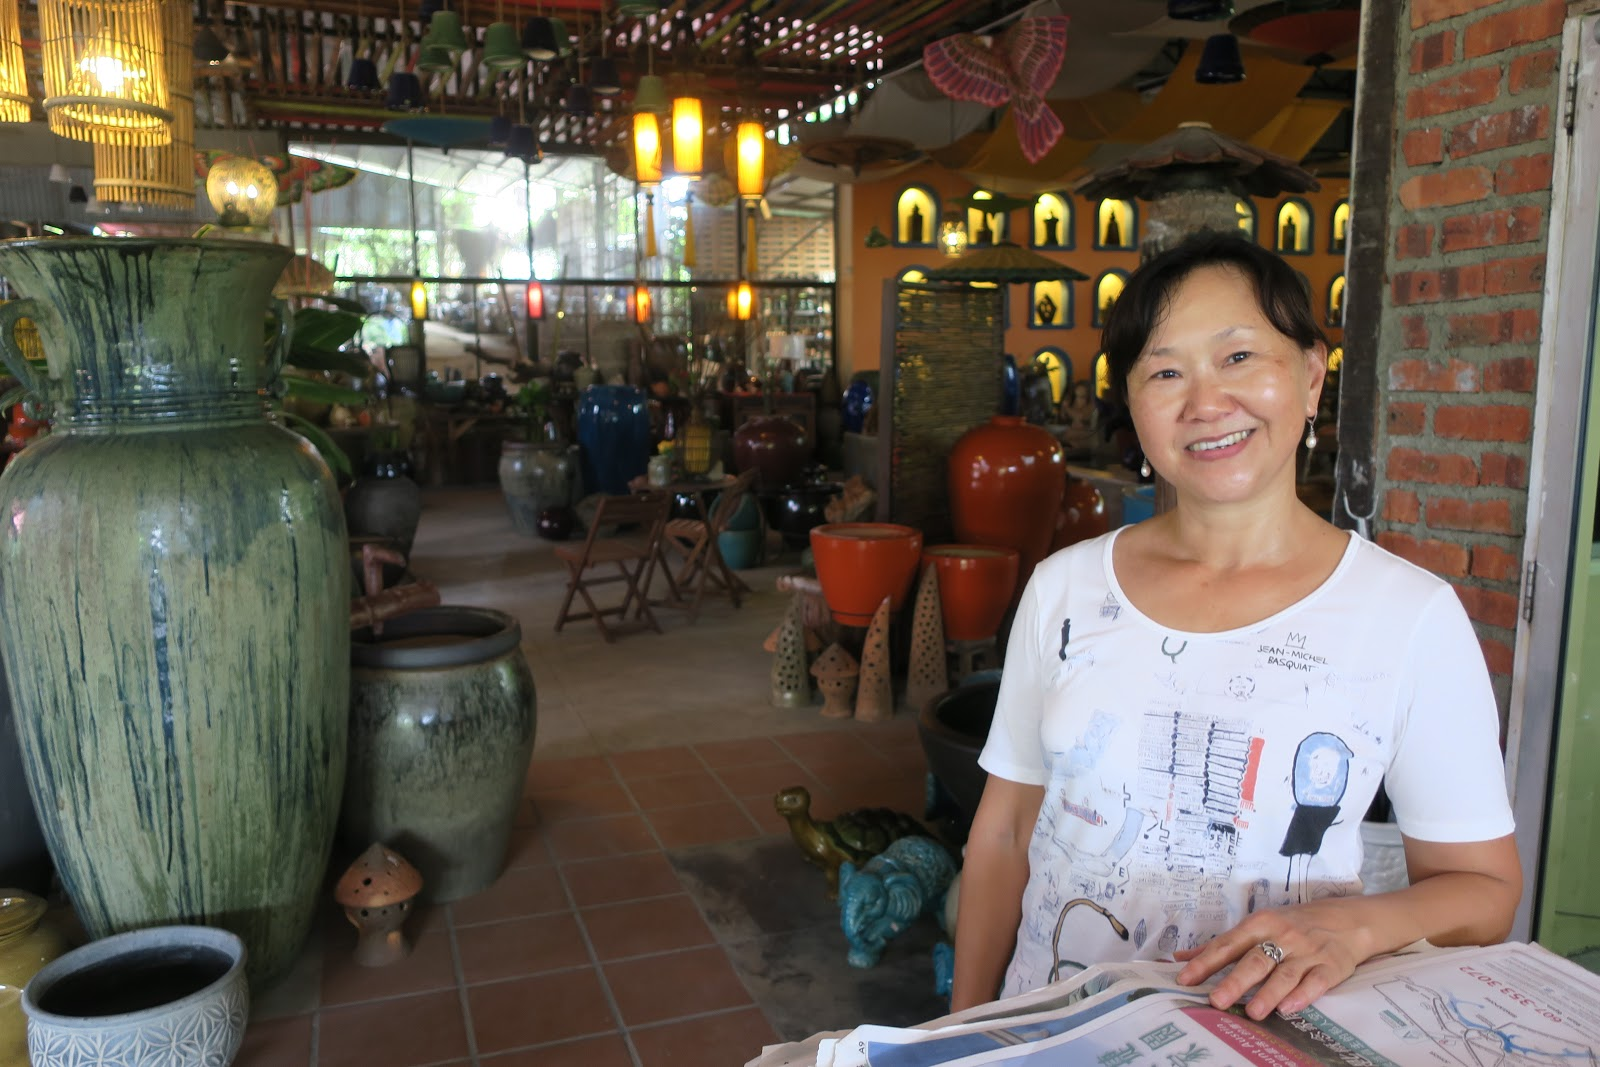 Lee Lang, the youngest daughter of Aw Eng Kwang, was the driving force behind the revival of Aw Pottery